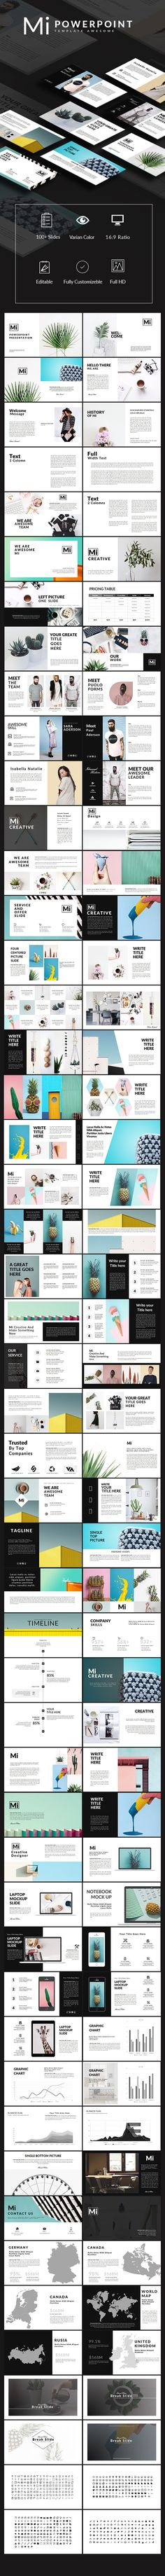 Buy Mi Powerpoint Multipurpose Template by slidercreative on GraphicRiver. MAIN FILE: Images Placeholder Drag And Drop image Theme Colour Option, Easy to change colors, Fully editable text, ph. Powerpoint Design Templates, Graphic Design Templates, Creative Powerpoint, Keynote Template, Powerpoint Tips, Graphisches Design, Layout Design, Cv Inspiration, Newsletter Layout